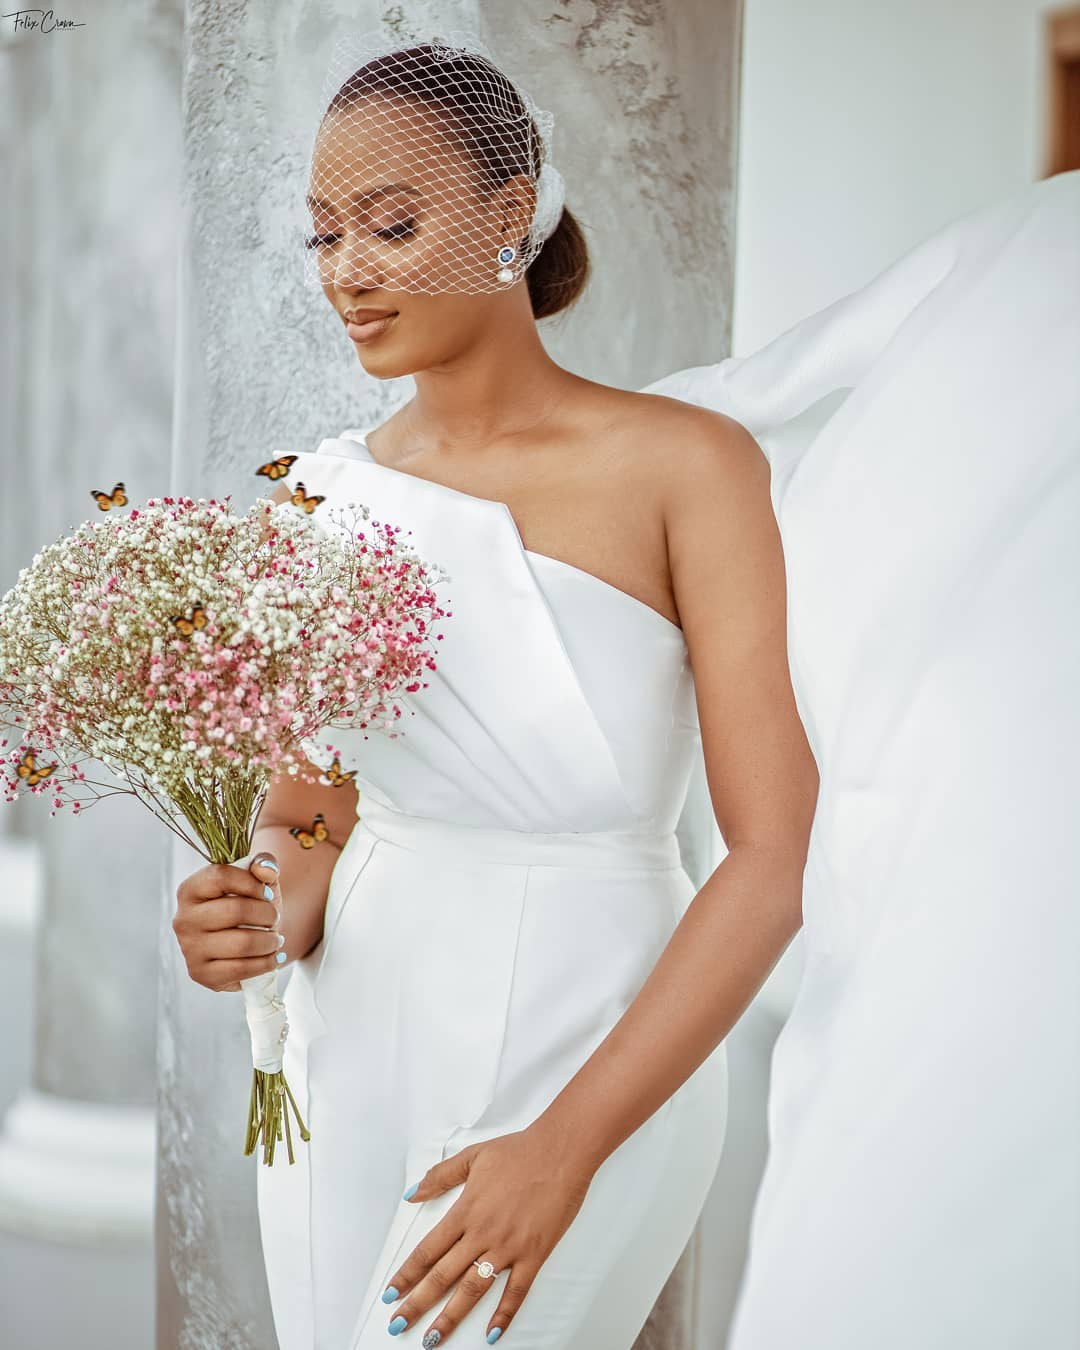 intimate-nigerian-wedding-2020-olaitan-and-segun-wedding